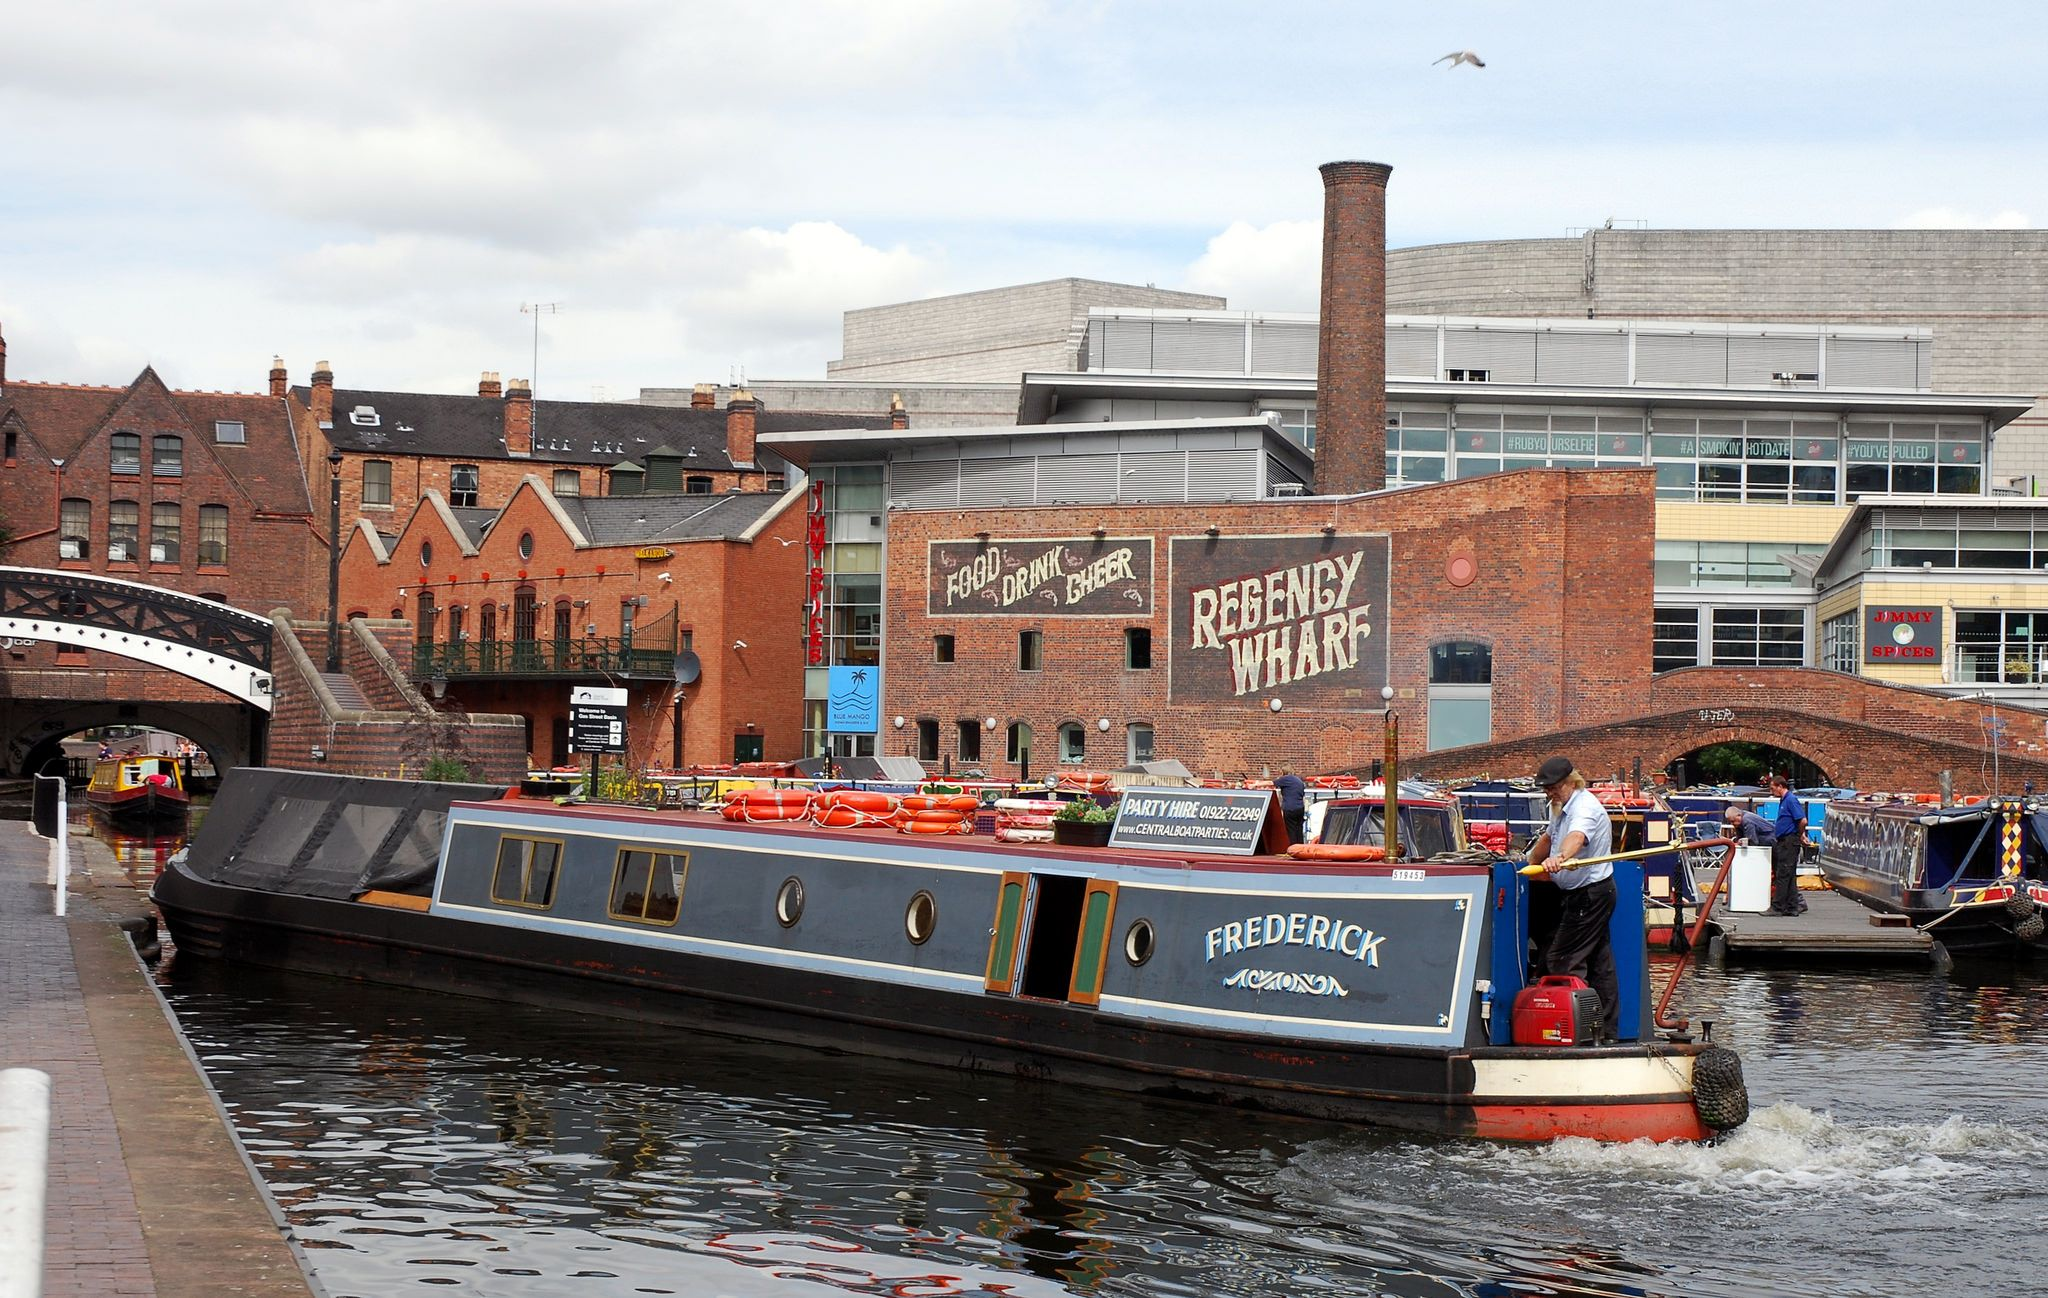 'Frederick' manouvering out of Gas Street Basin, Birmingham.